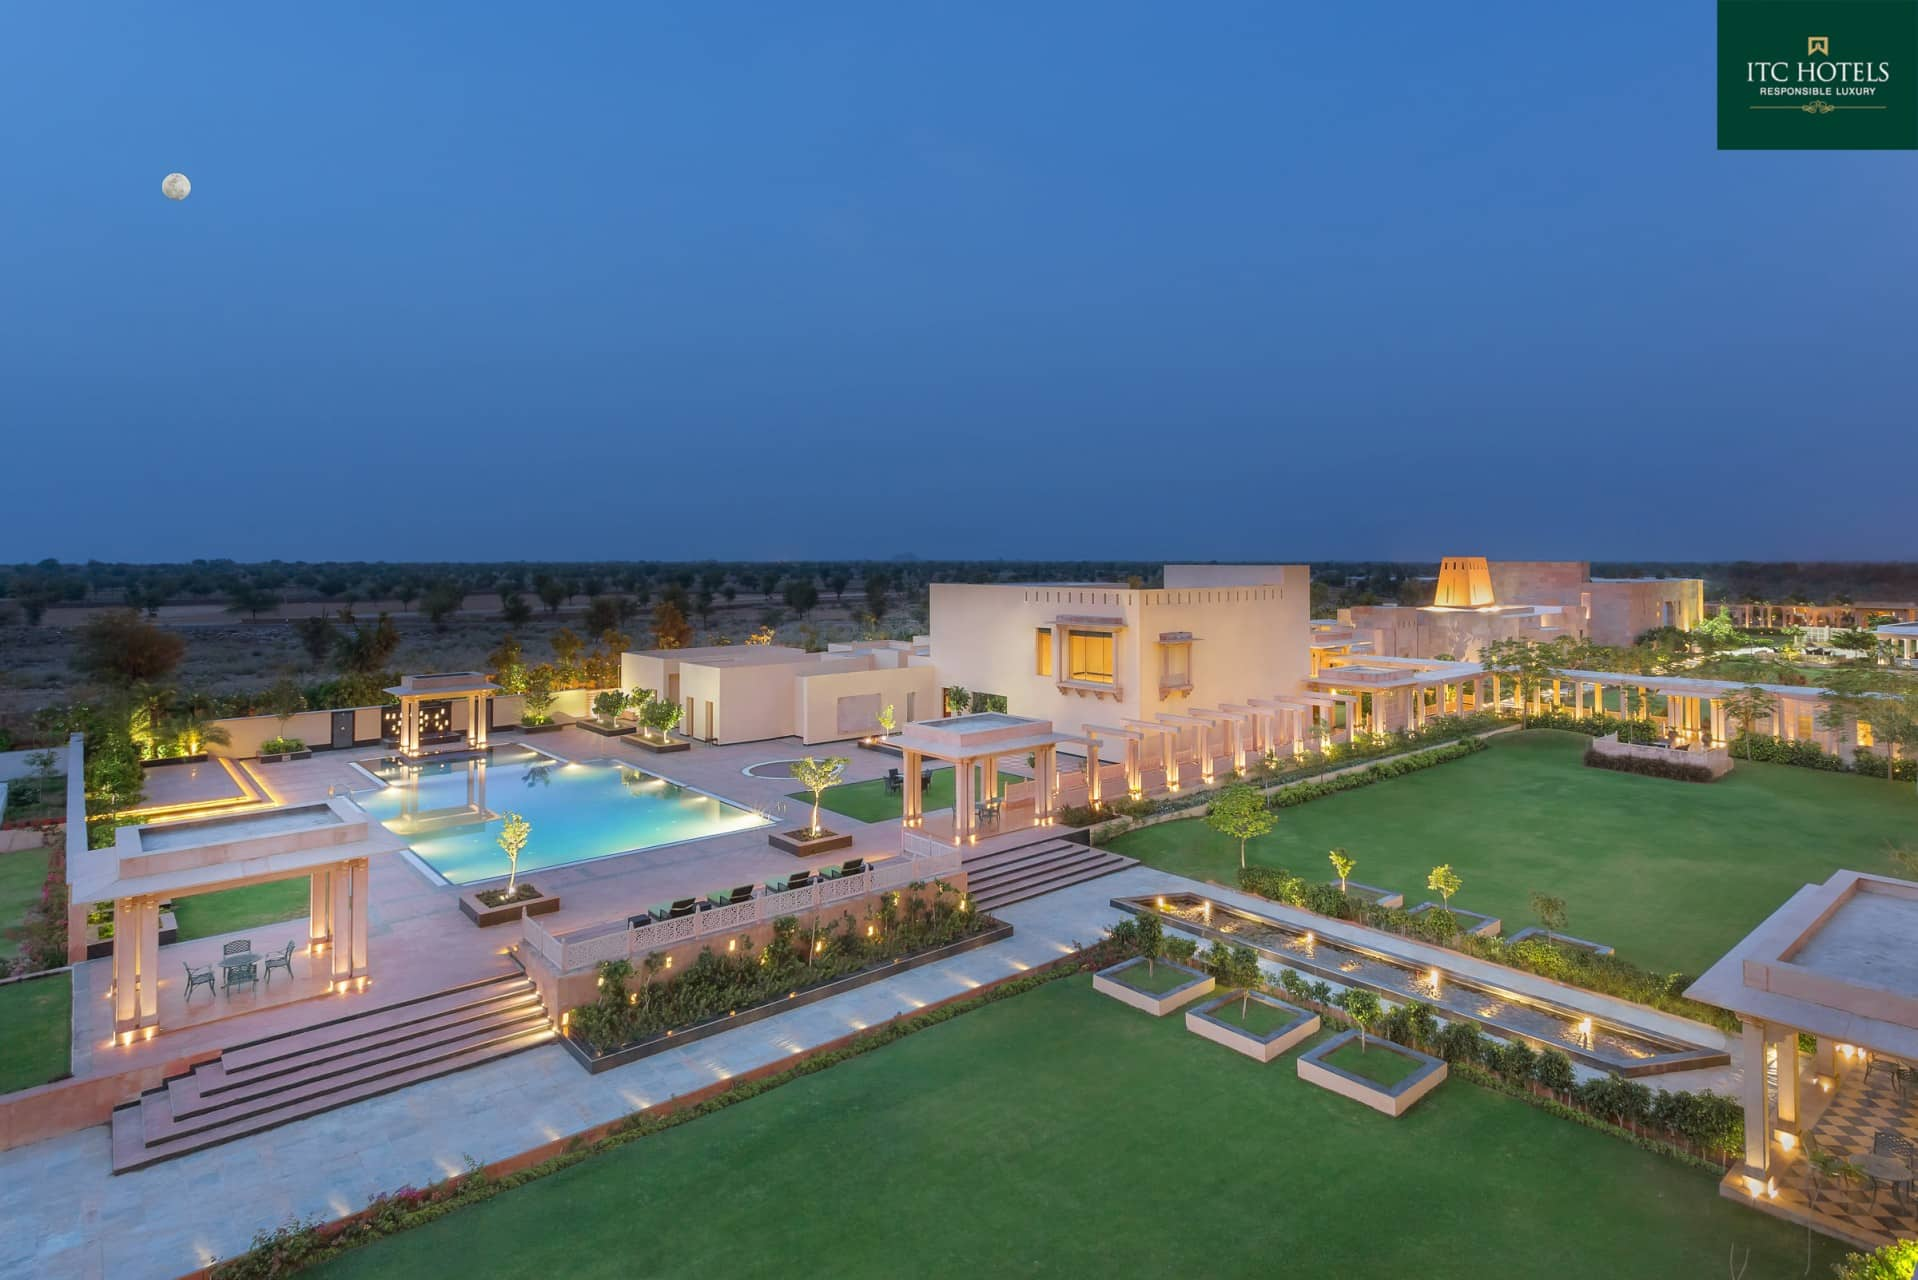 Best Architecture Photographer Jodhpur India | ITC Hotel Welcome Facade Sunset Photography India